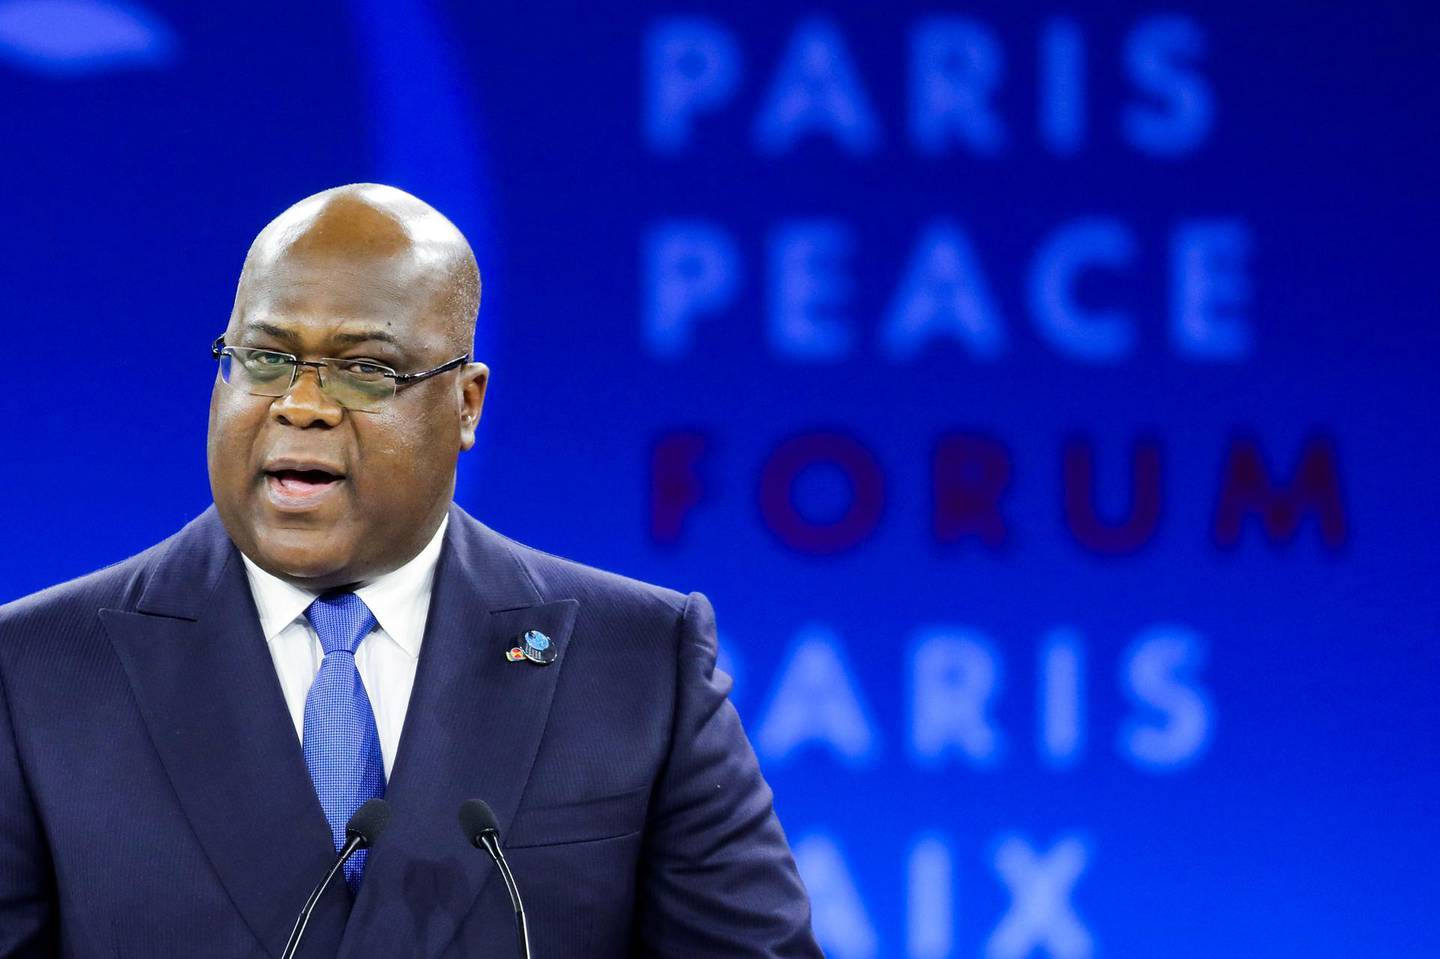 President of Democratic Republic of Congo (DRC) Felix Tshisekedi delivers a speech at the start of the Paris Peace Forum, France November 12, 2019. Ludovic Marin/Pool via REUTERS